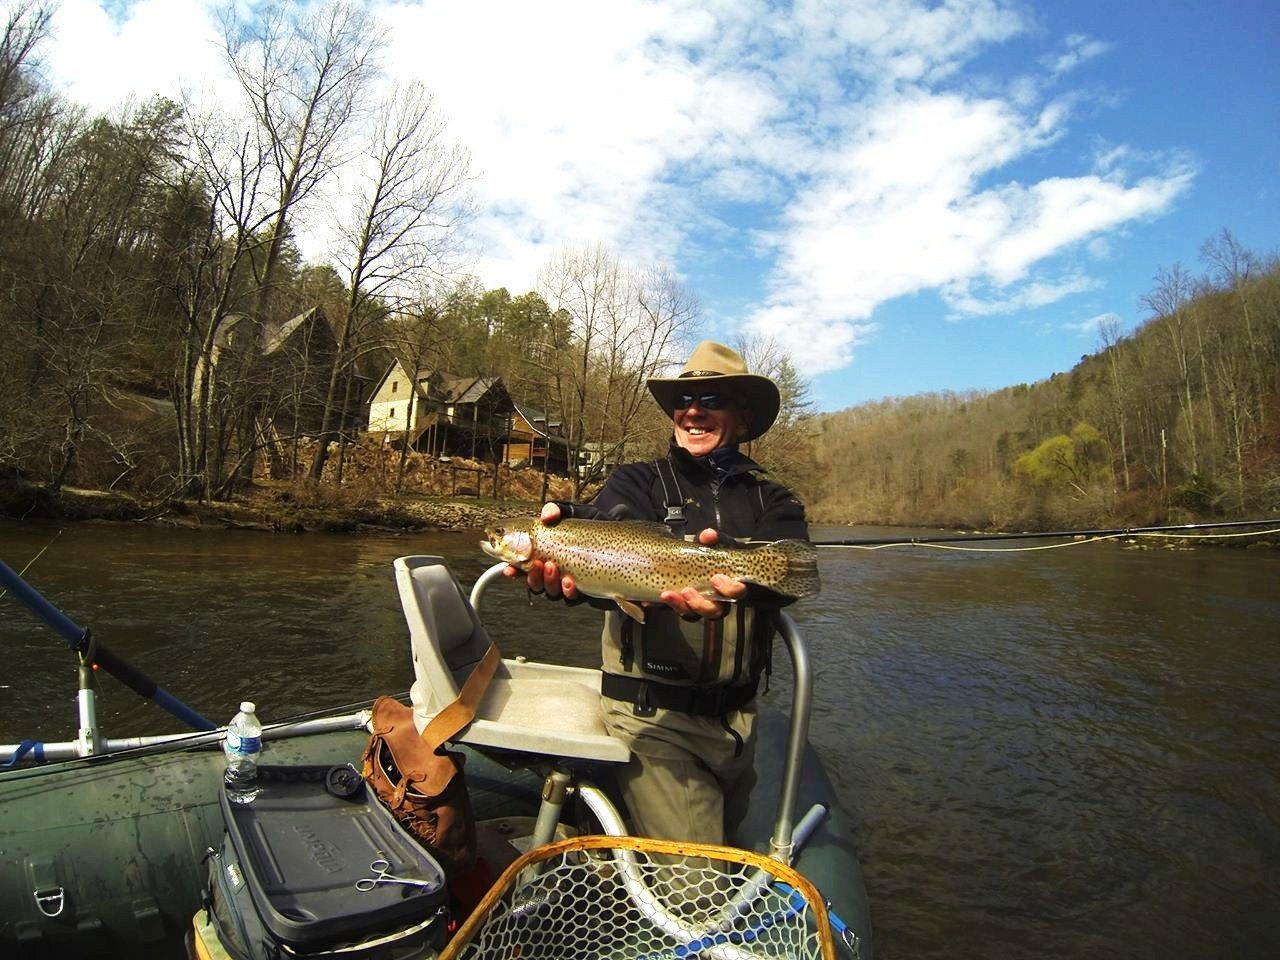 Guided fly fishing trips near highlands north carolina for Fly fishing vacation packages